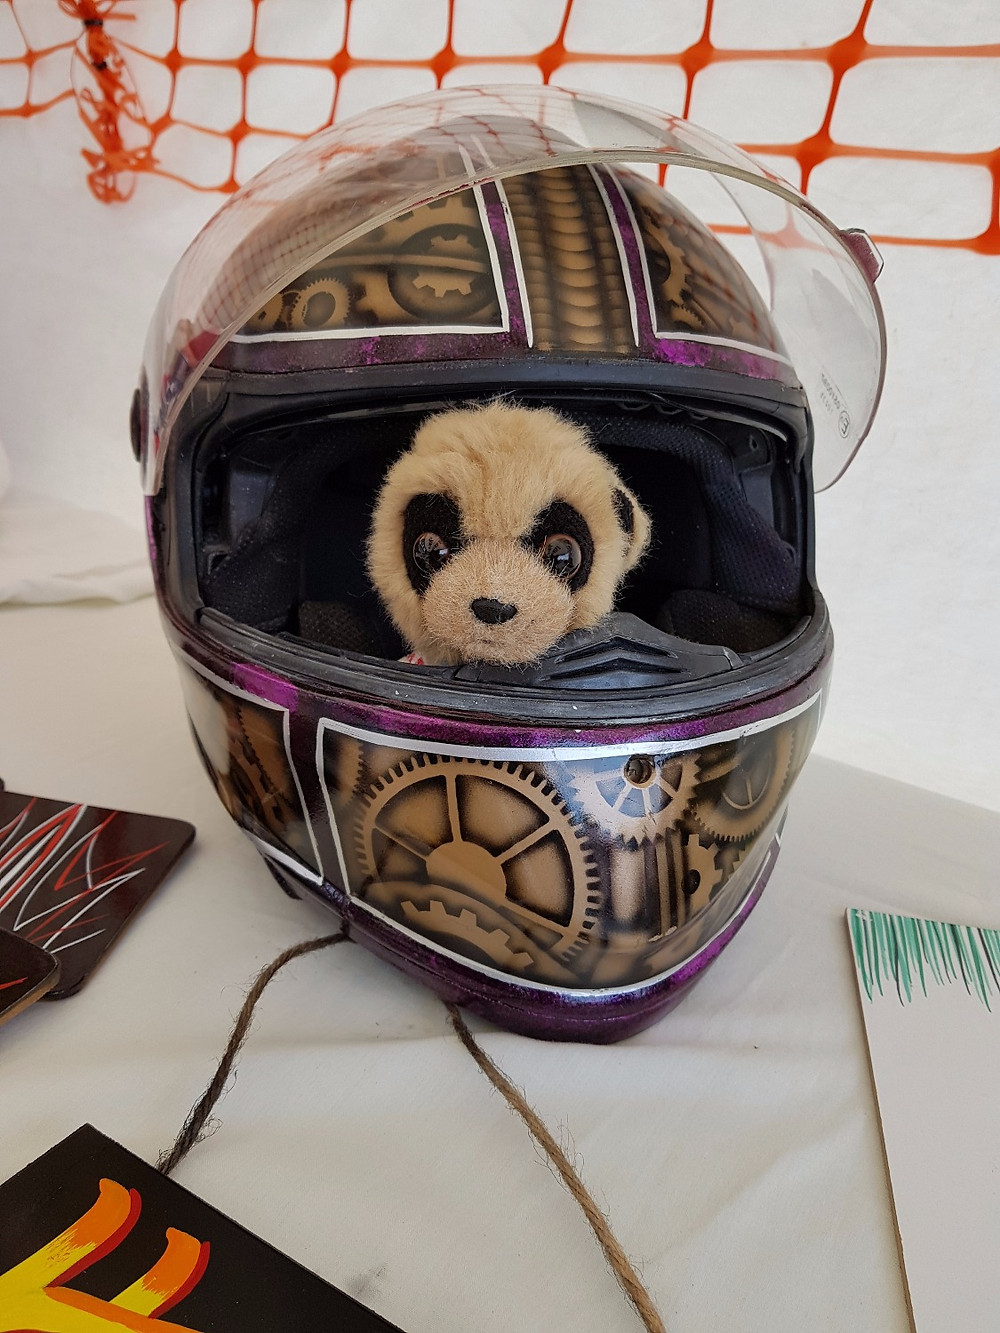 Oleg tries out a crash helmet.